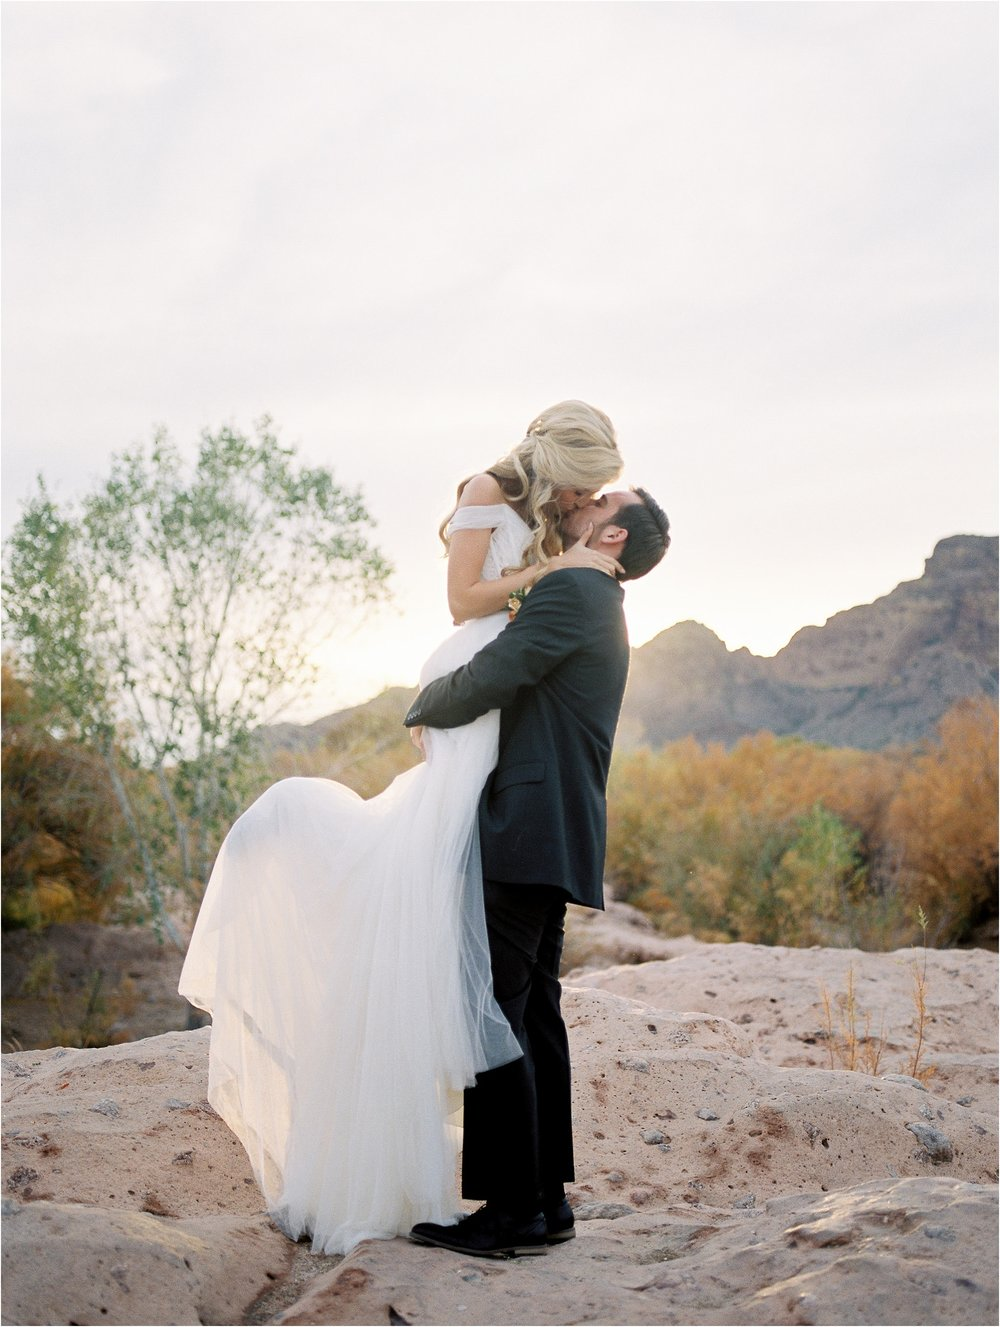 Sarah Jane Photography Film Hybrid Scottsdale Phoenix Arizona Destination Wedding Photographer Ally Ryan Desert_0022.jpg